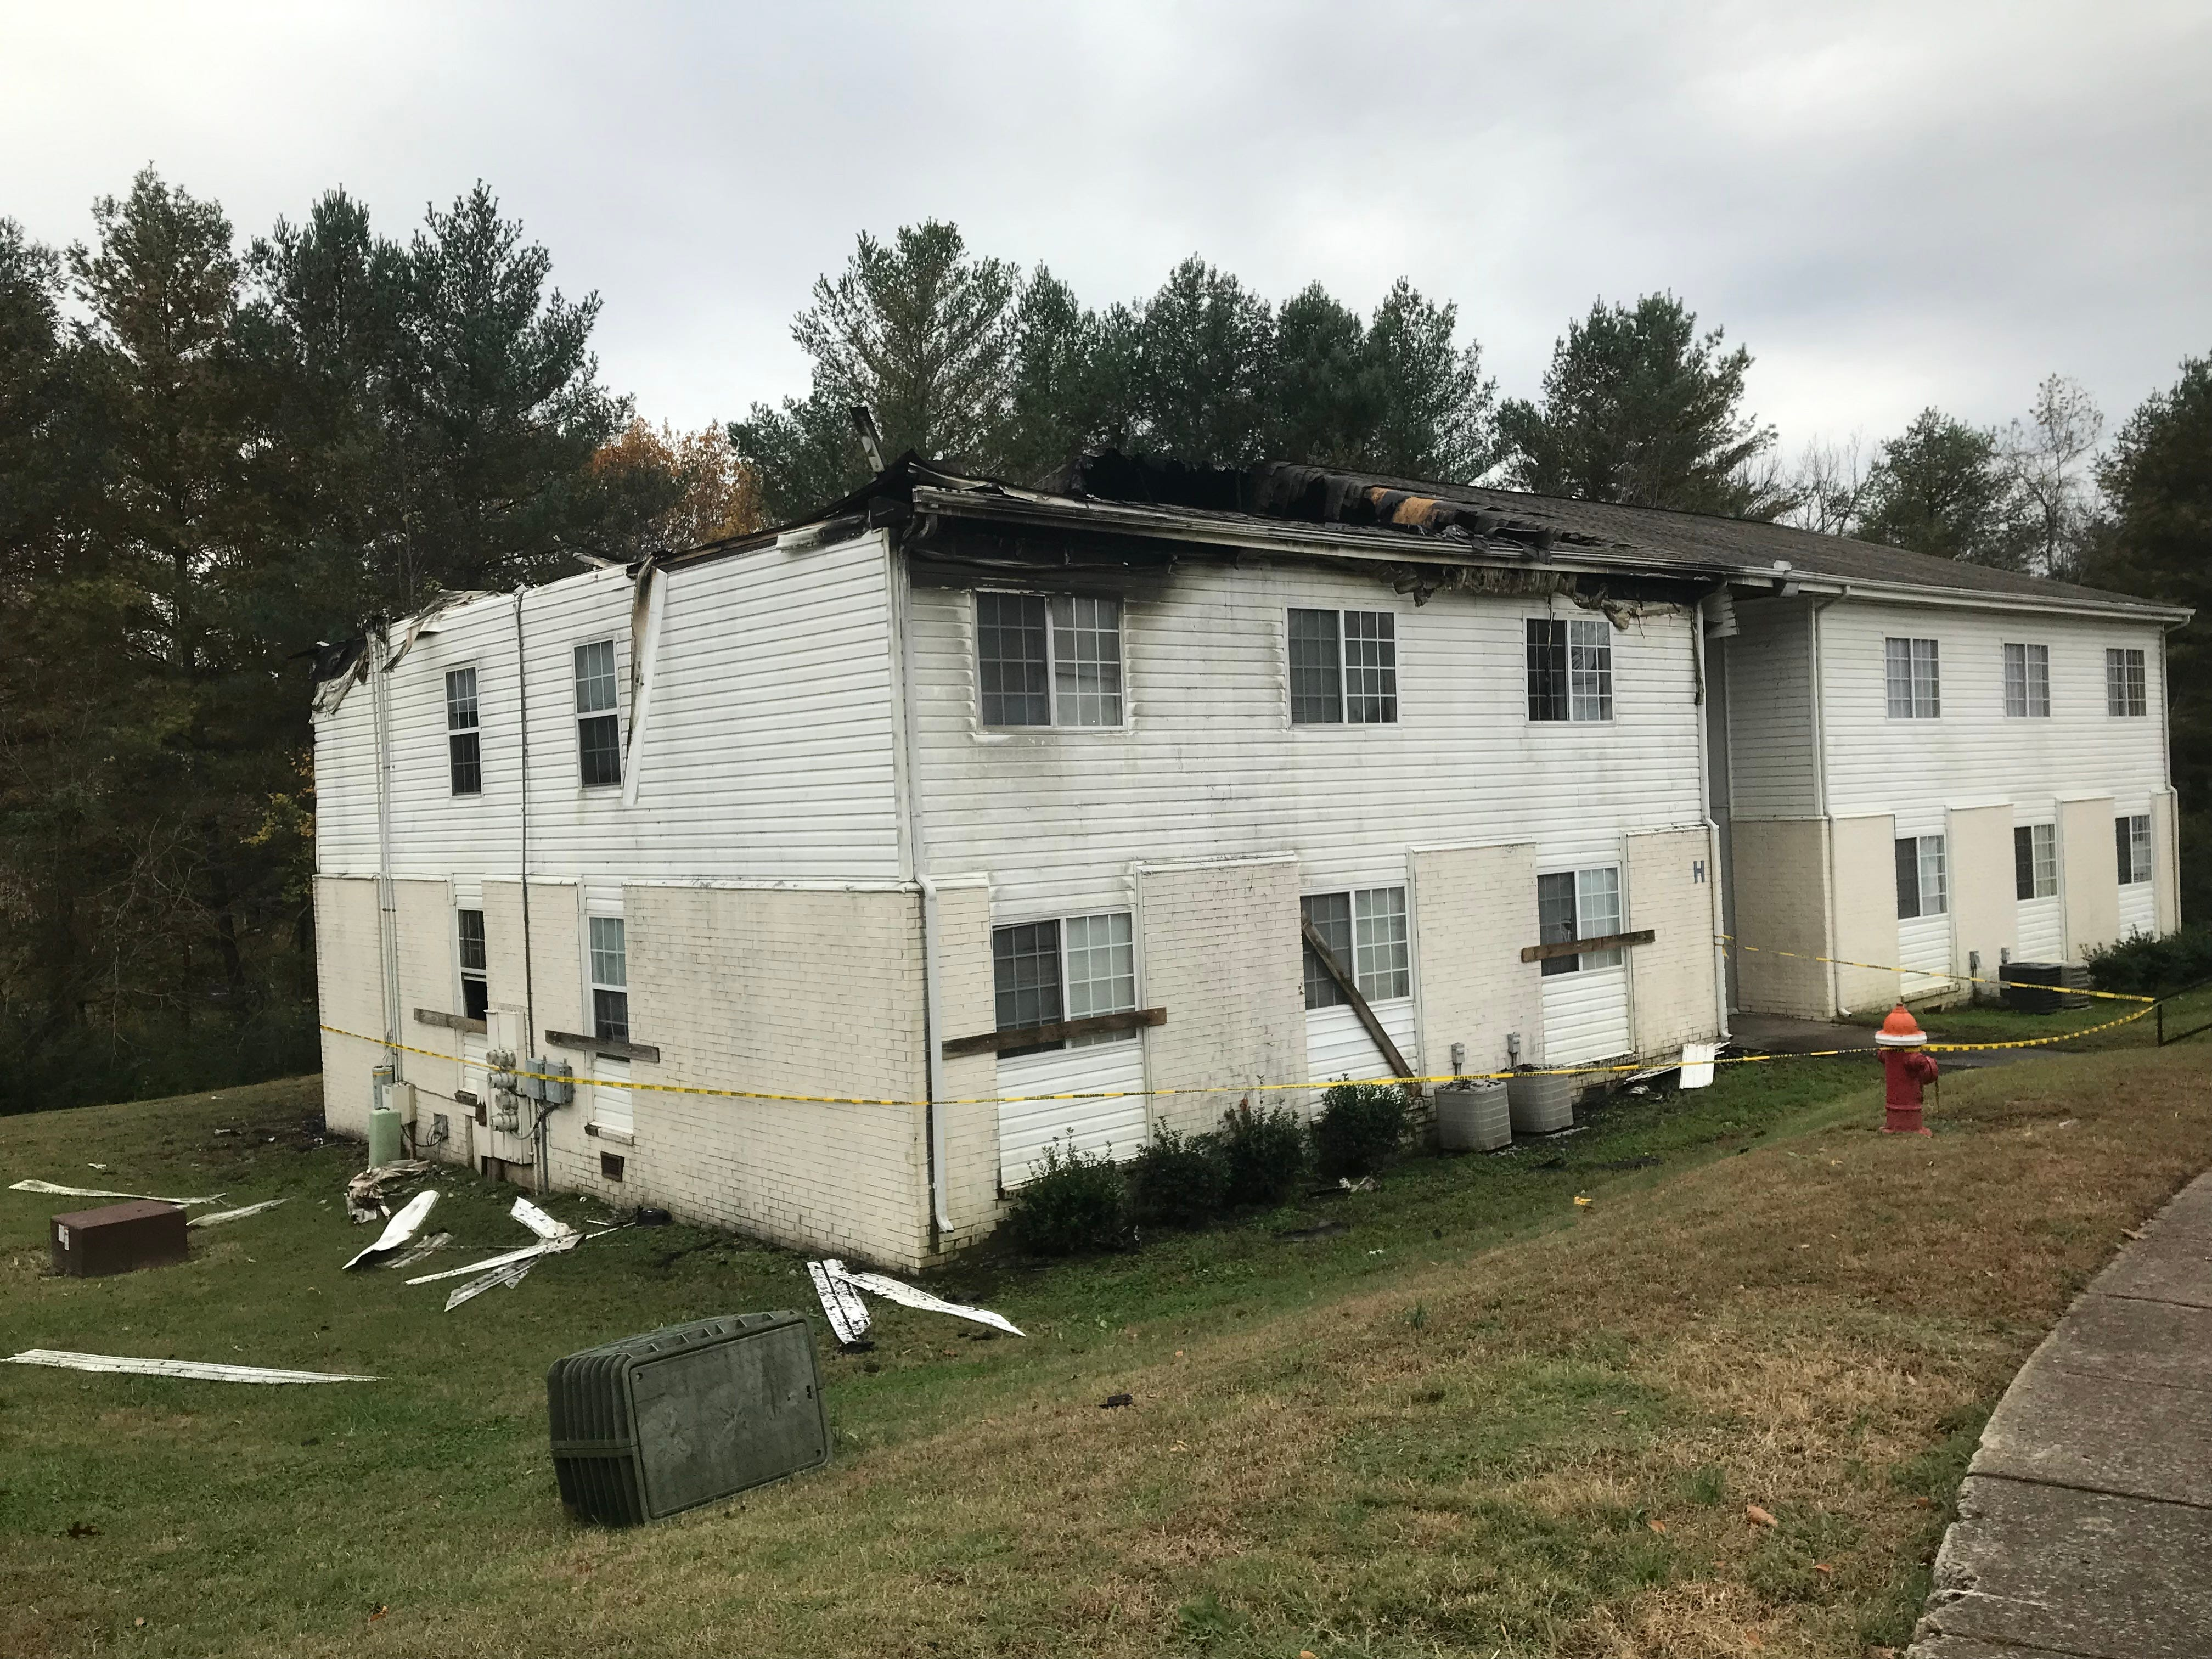 35 people from 8 apartments displaced after Clarksville fire